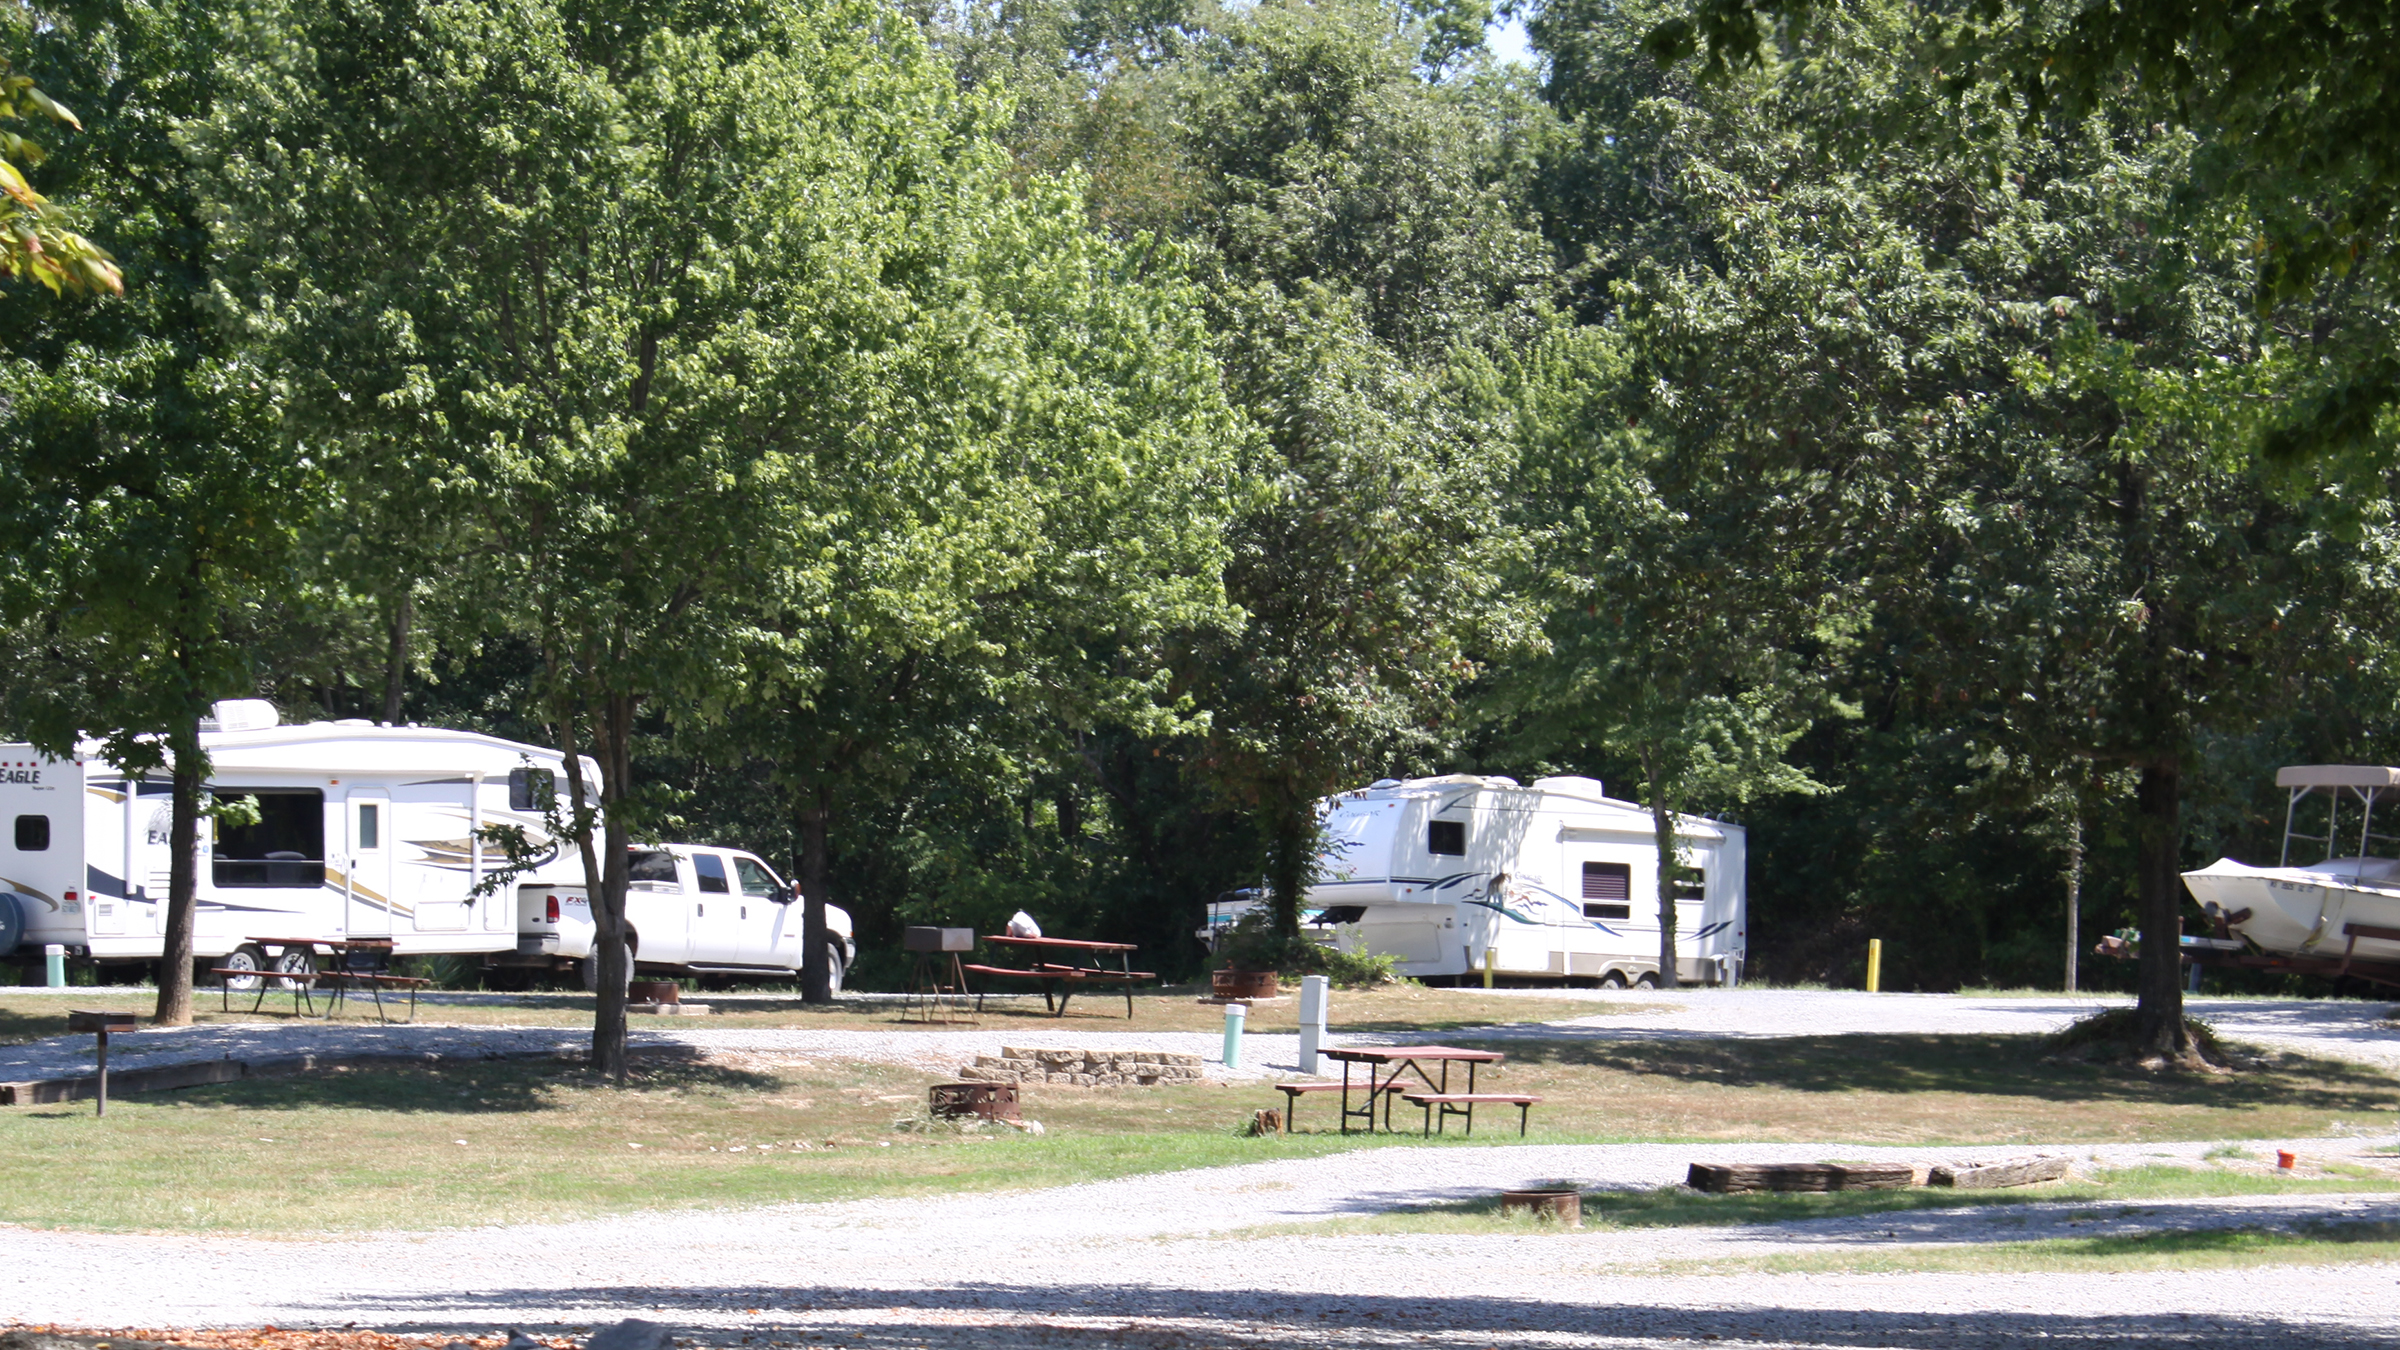 Benton KOA Journey Campground | Enjoy Illinois